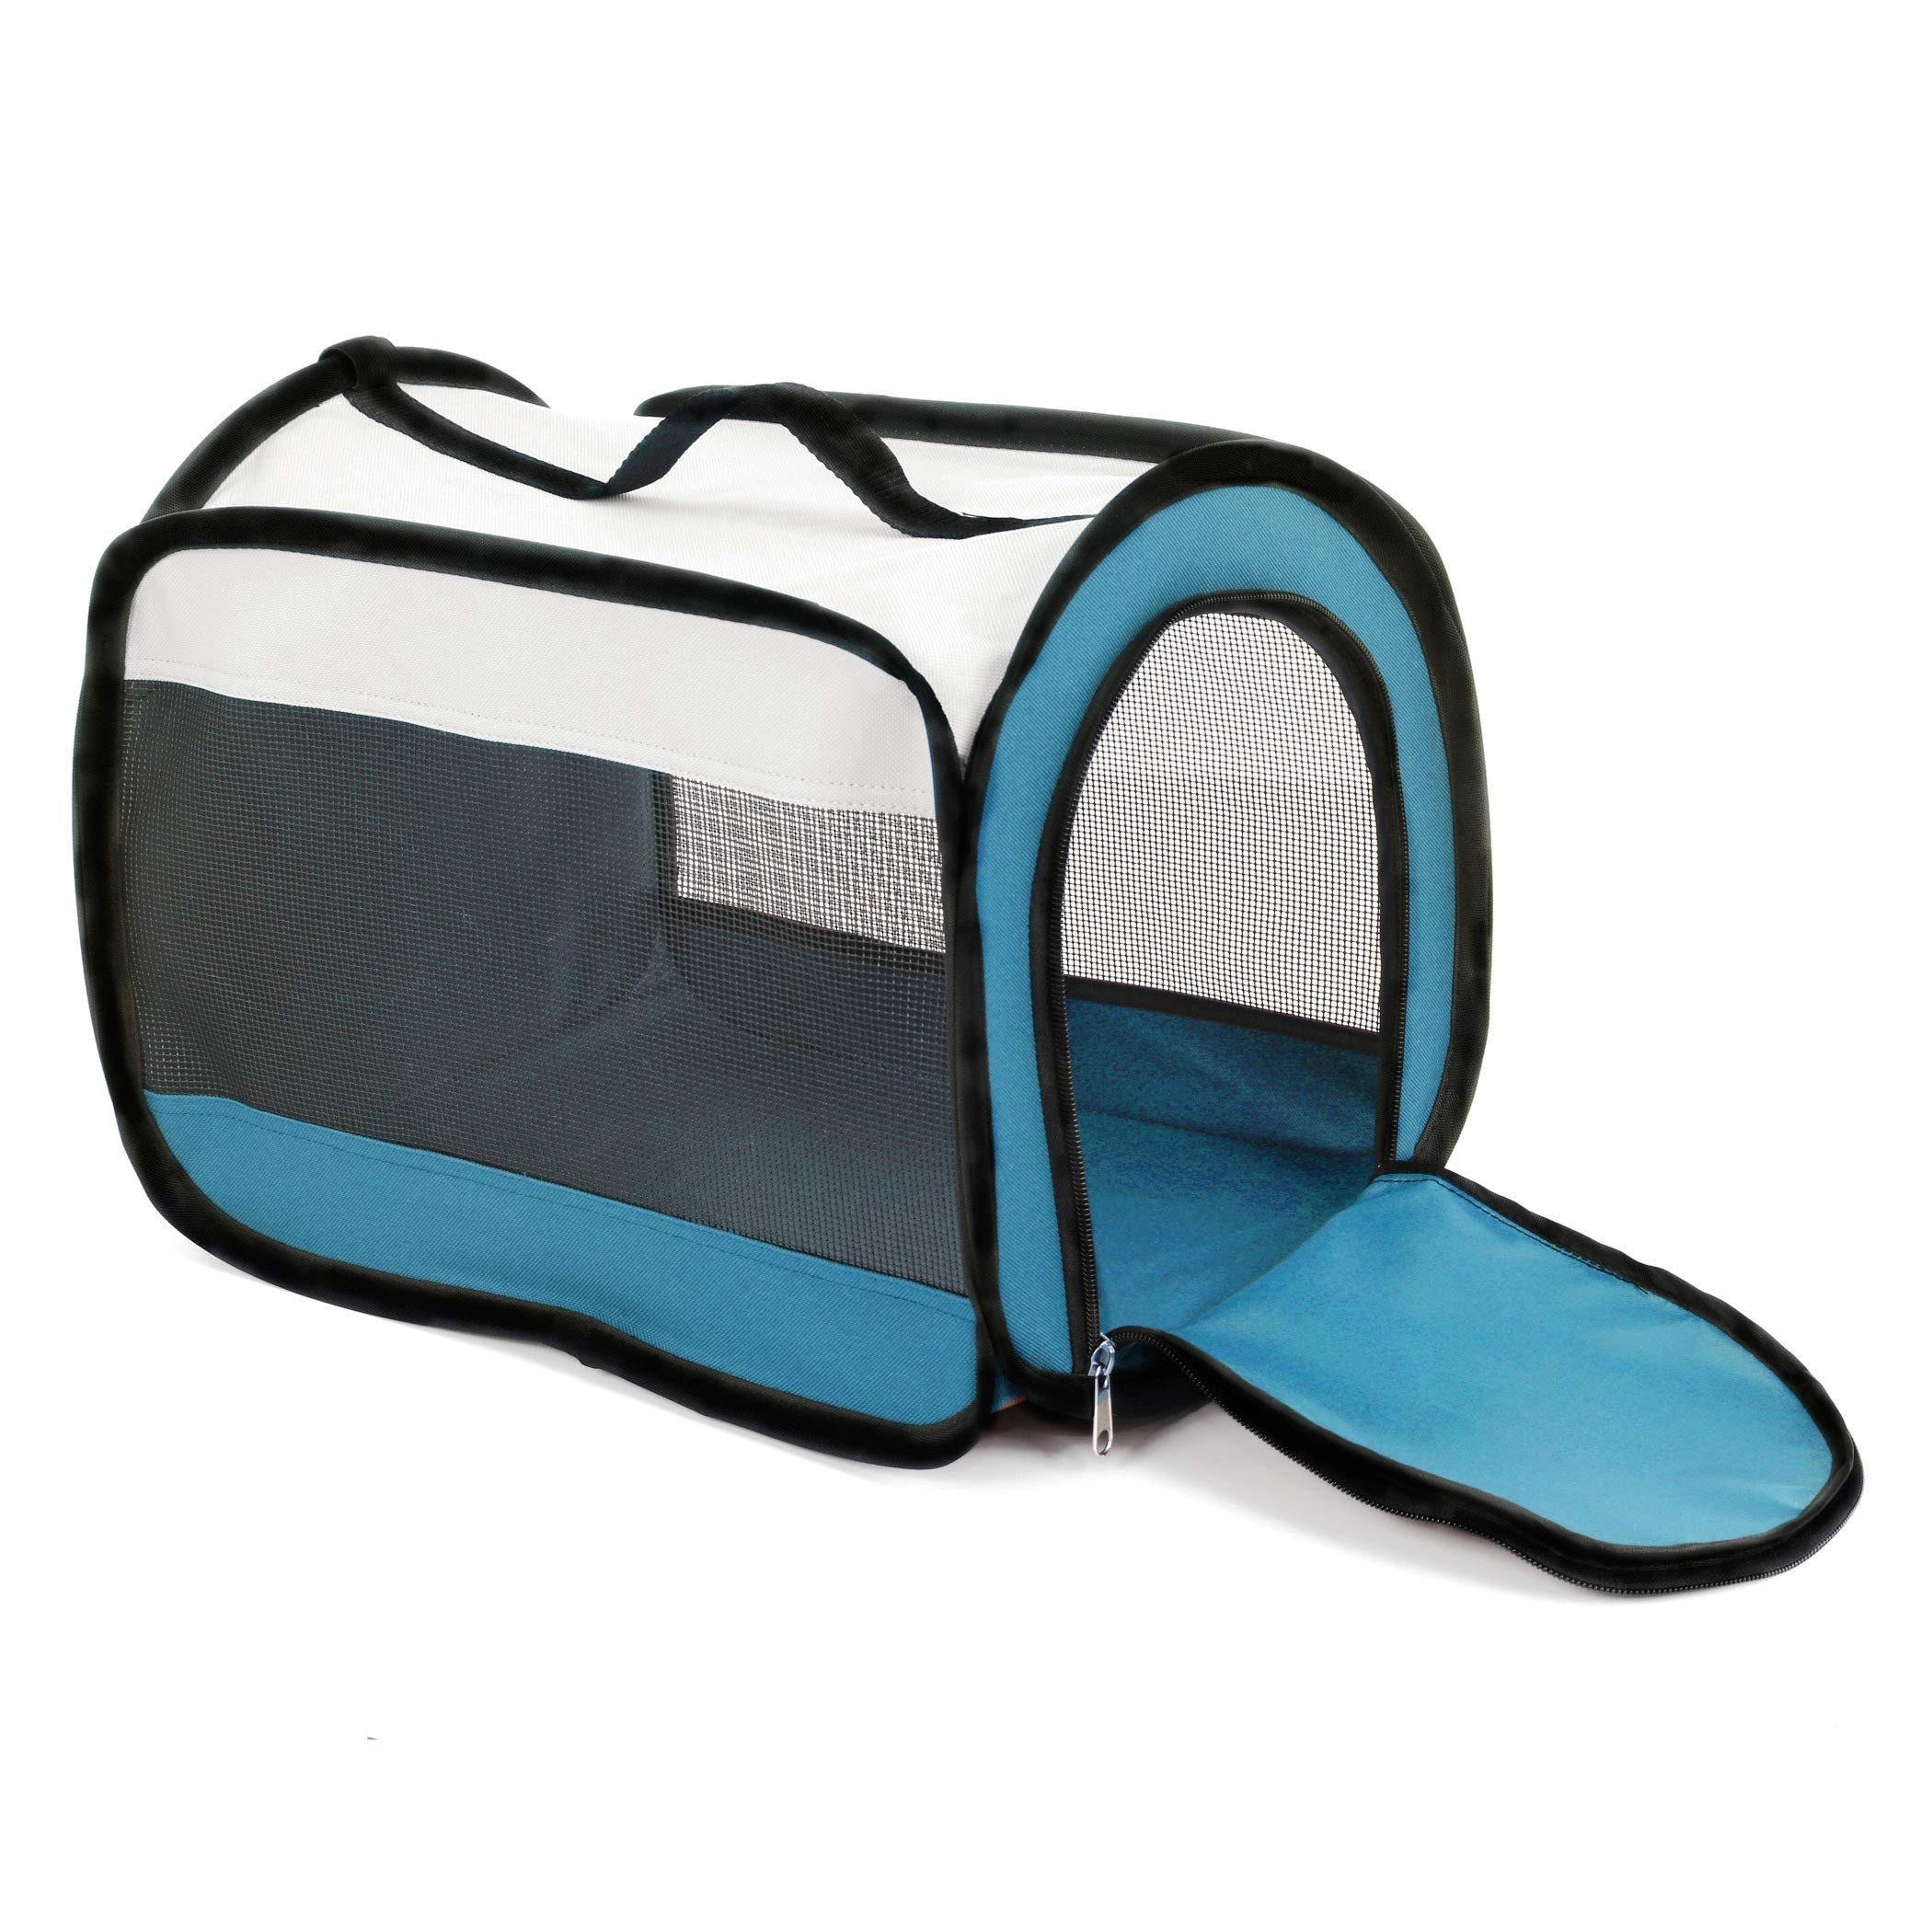 Ware Manufacturing Twist-N-Go Carrier for Small Pets, Hamsters, Ferrets, Rats, Guinea Pigs - Medium by Ware Manufacturing